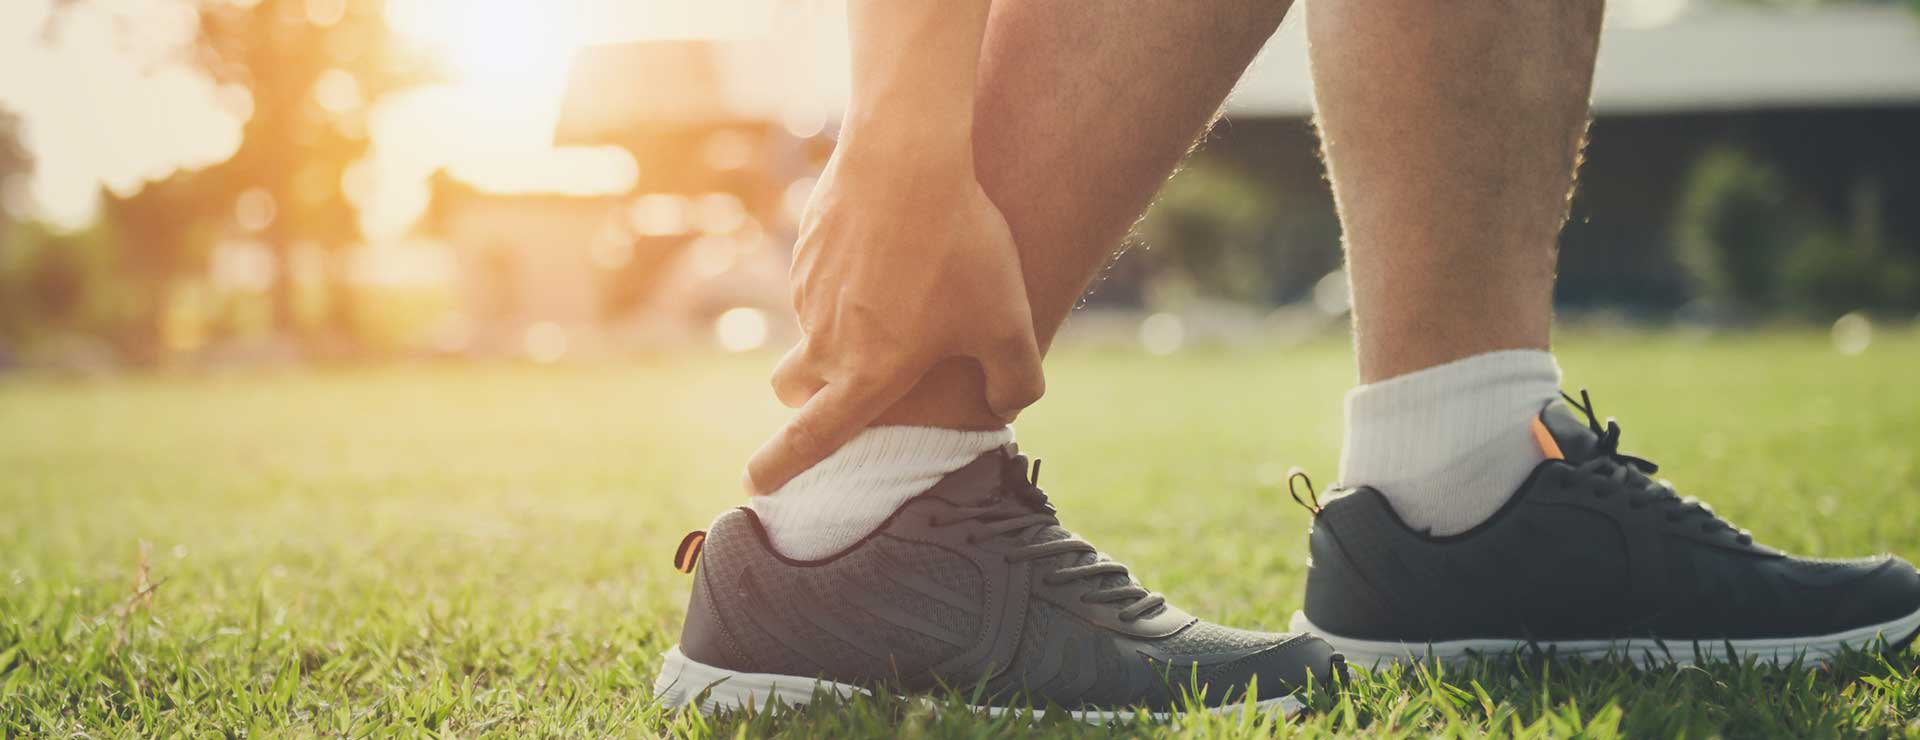 Lateral Ankle Ligament Reconstruction   Johns Hopkins Medicine